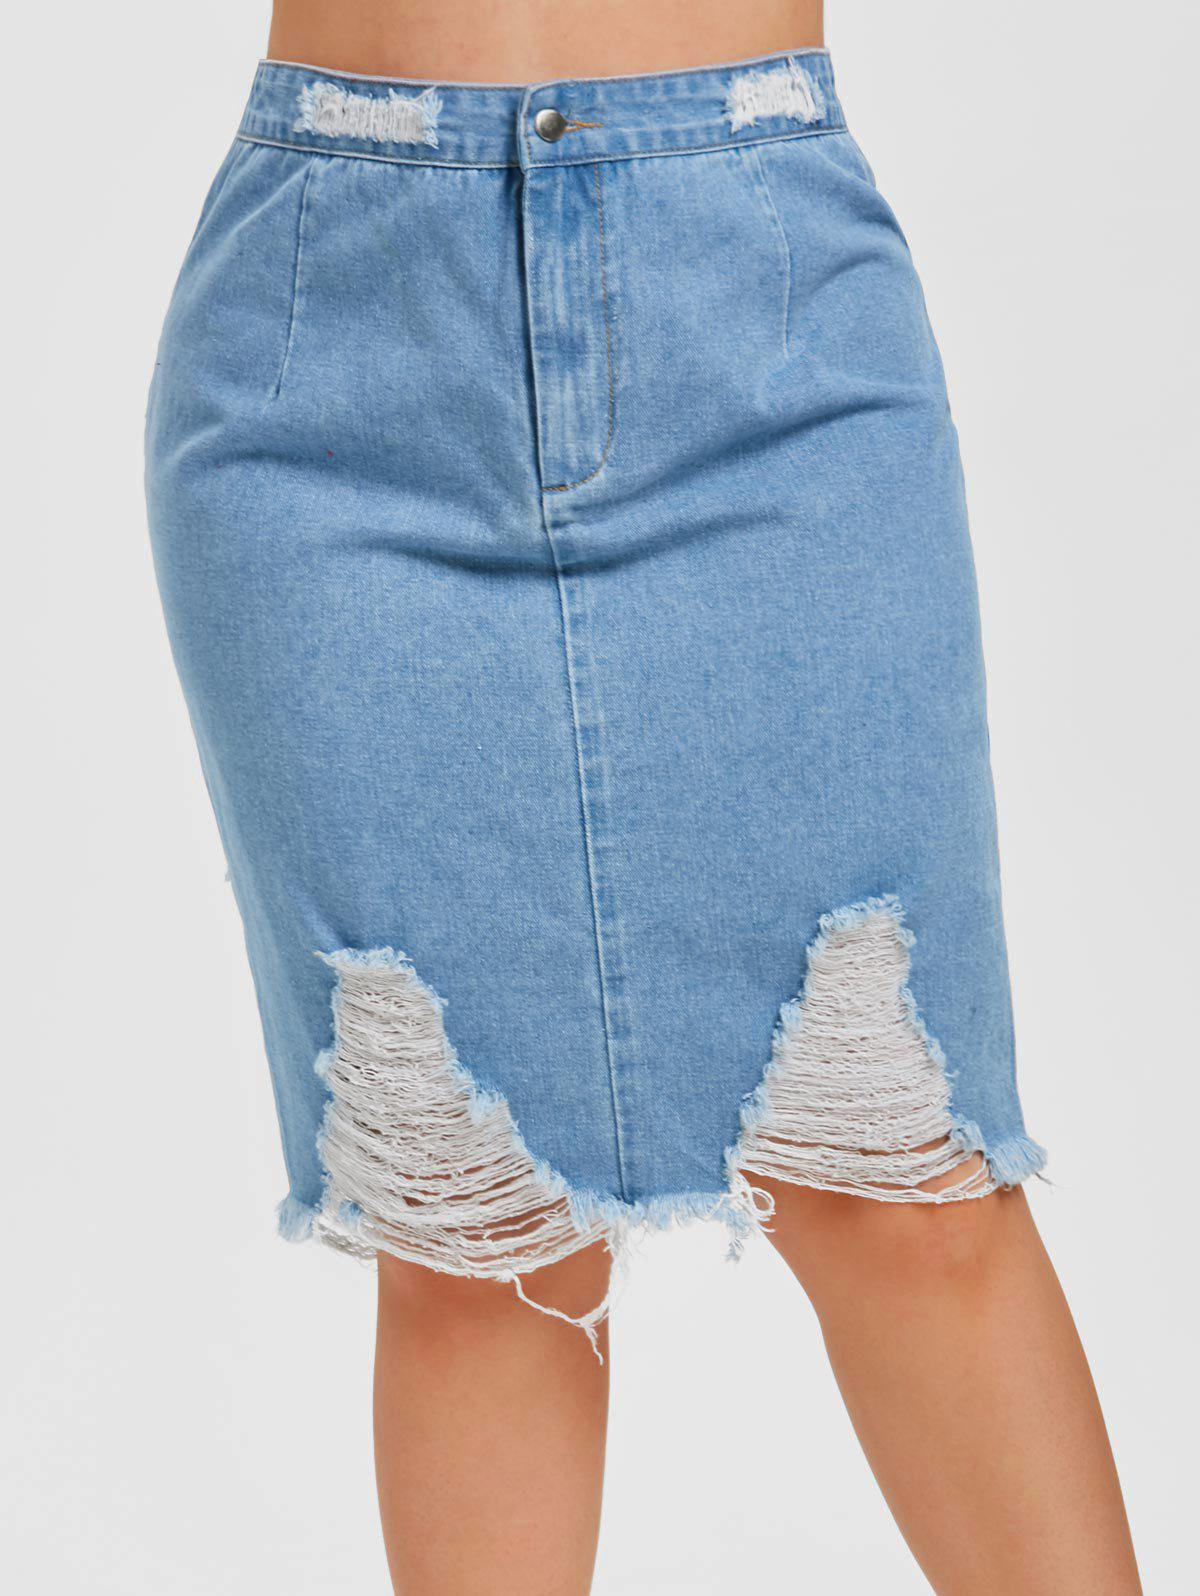 Plus Size High Rise Ripped Denim Skirt - BLUE 5X